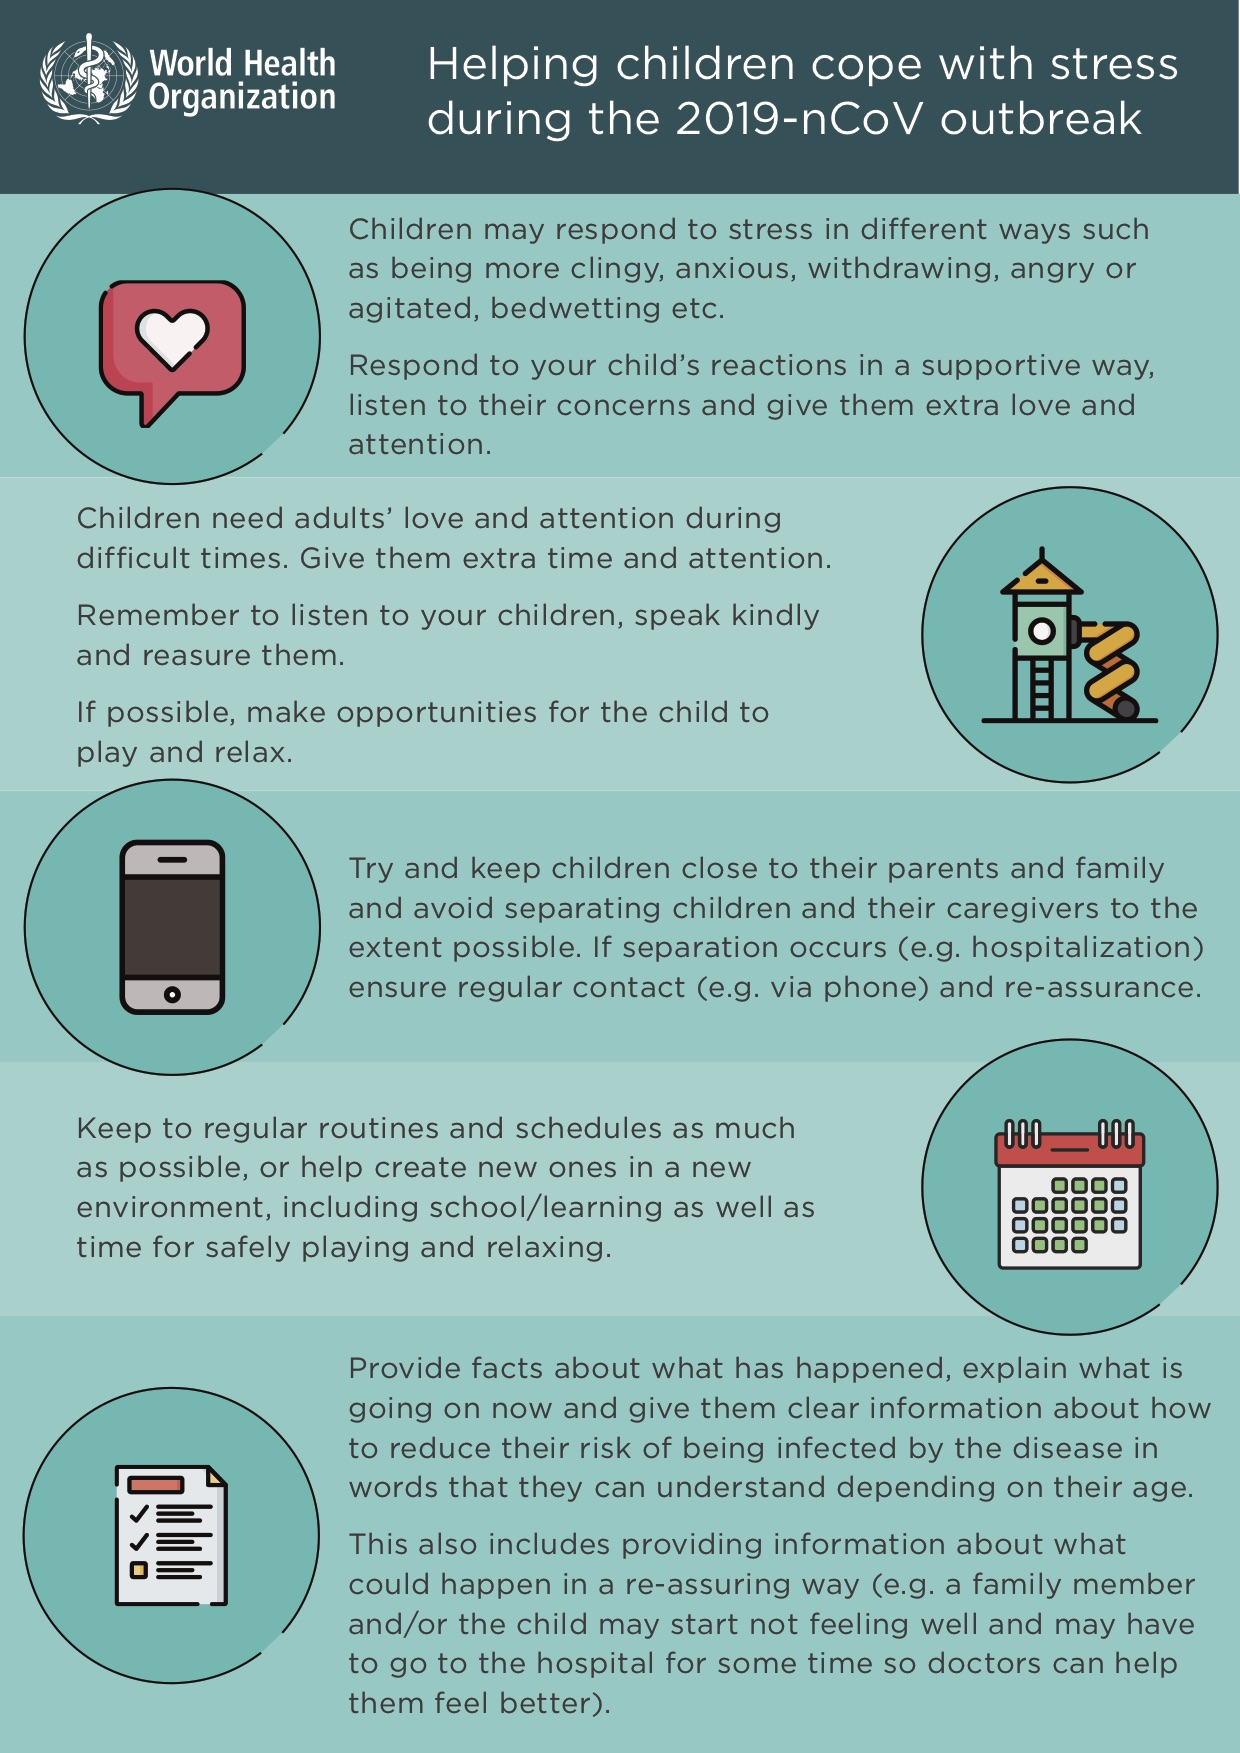 Infographic - Helping childre cope with stress during 2019-nCoV outbreak - World Health Organization